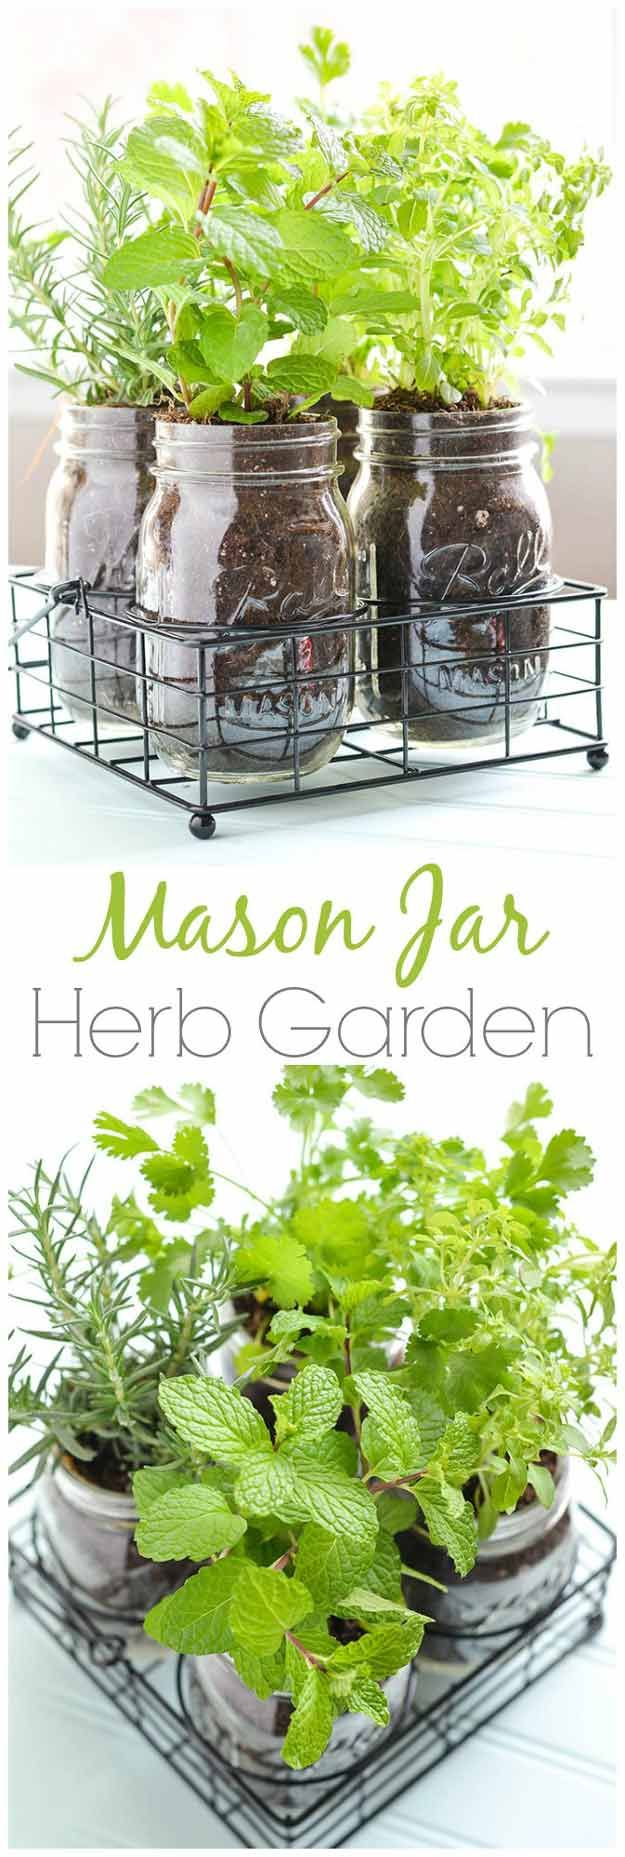 Check out Indoor Herb Garden Ideas at…